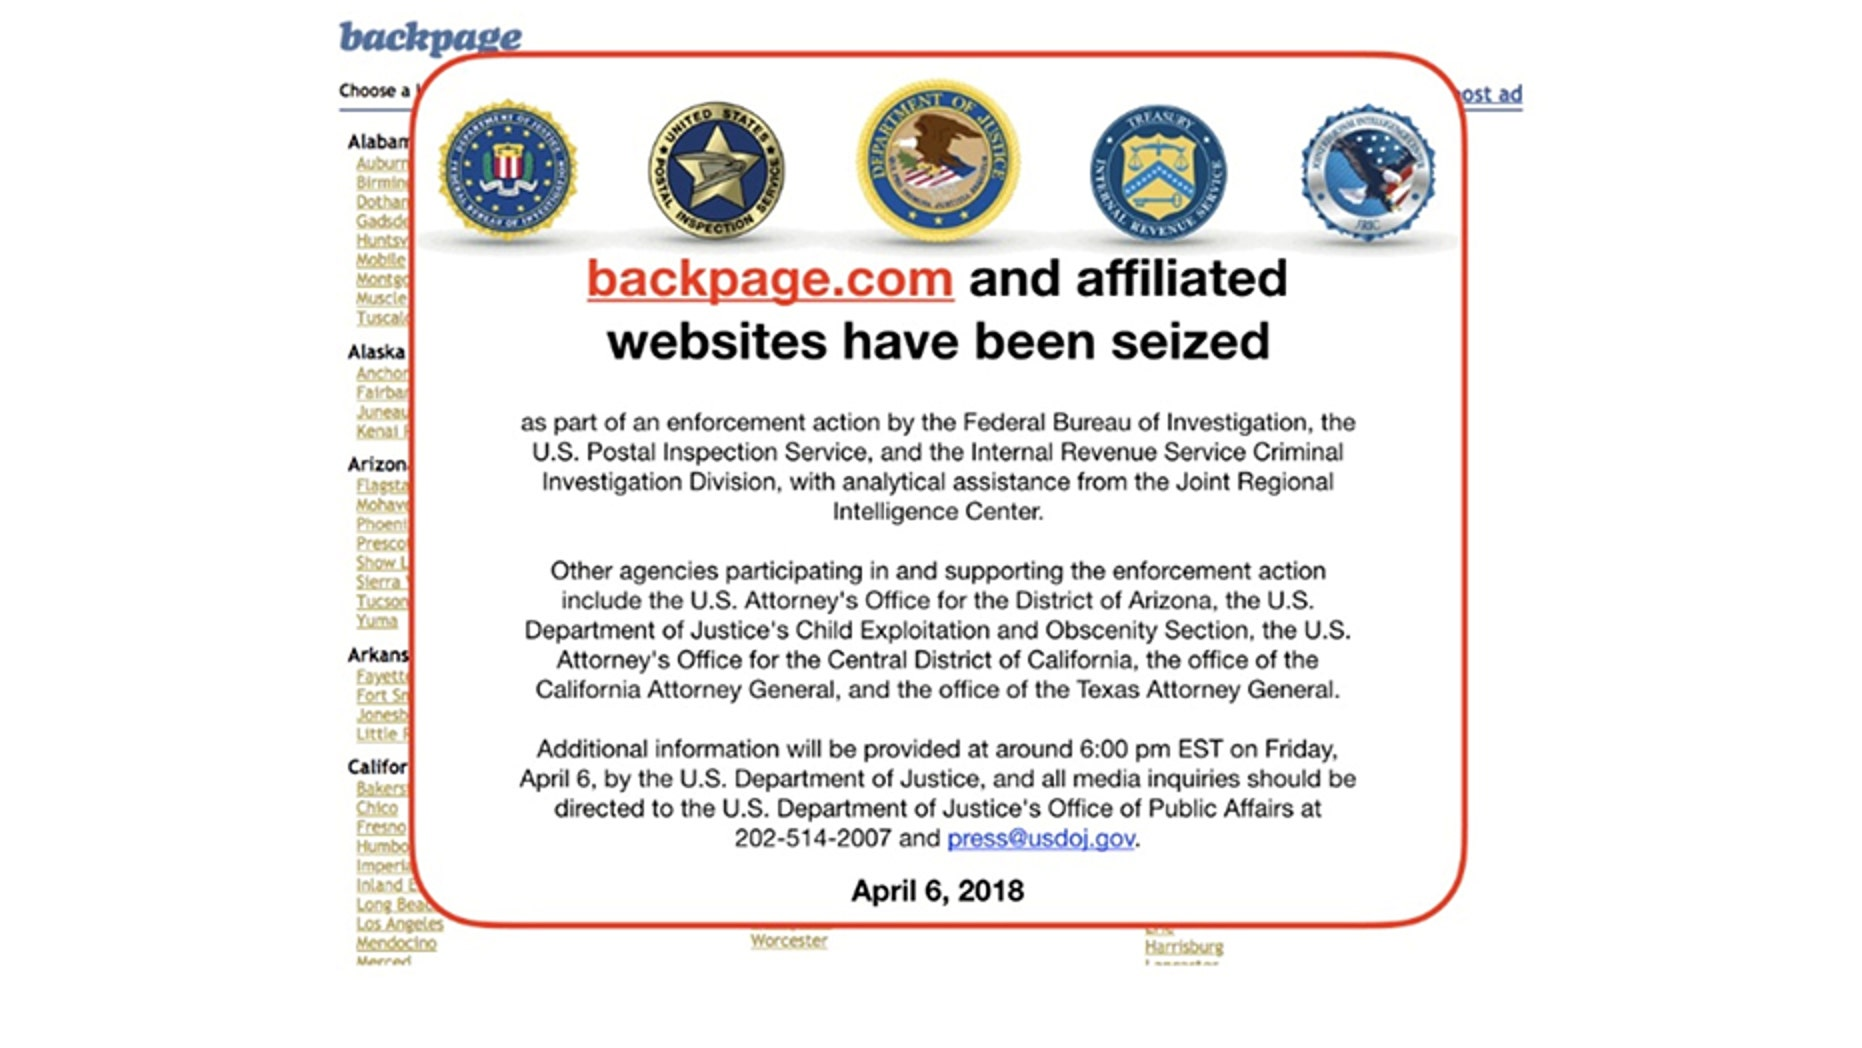 Backpage Com The Controversial Website Infamous For Its Sex Related Classified Ads